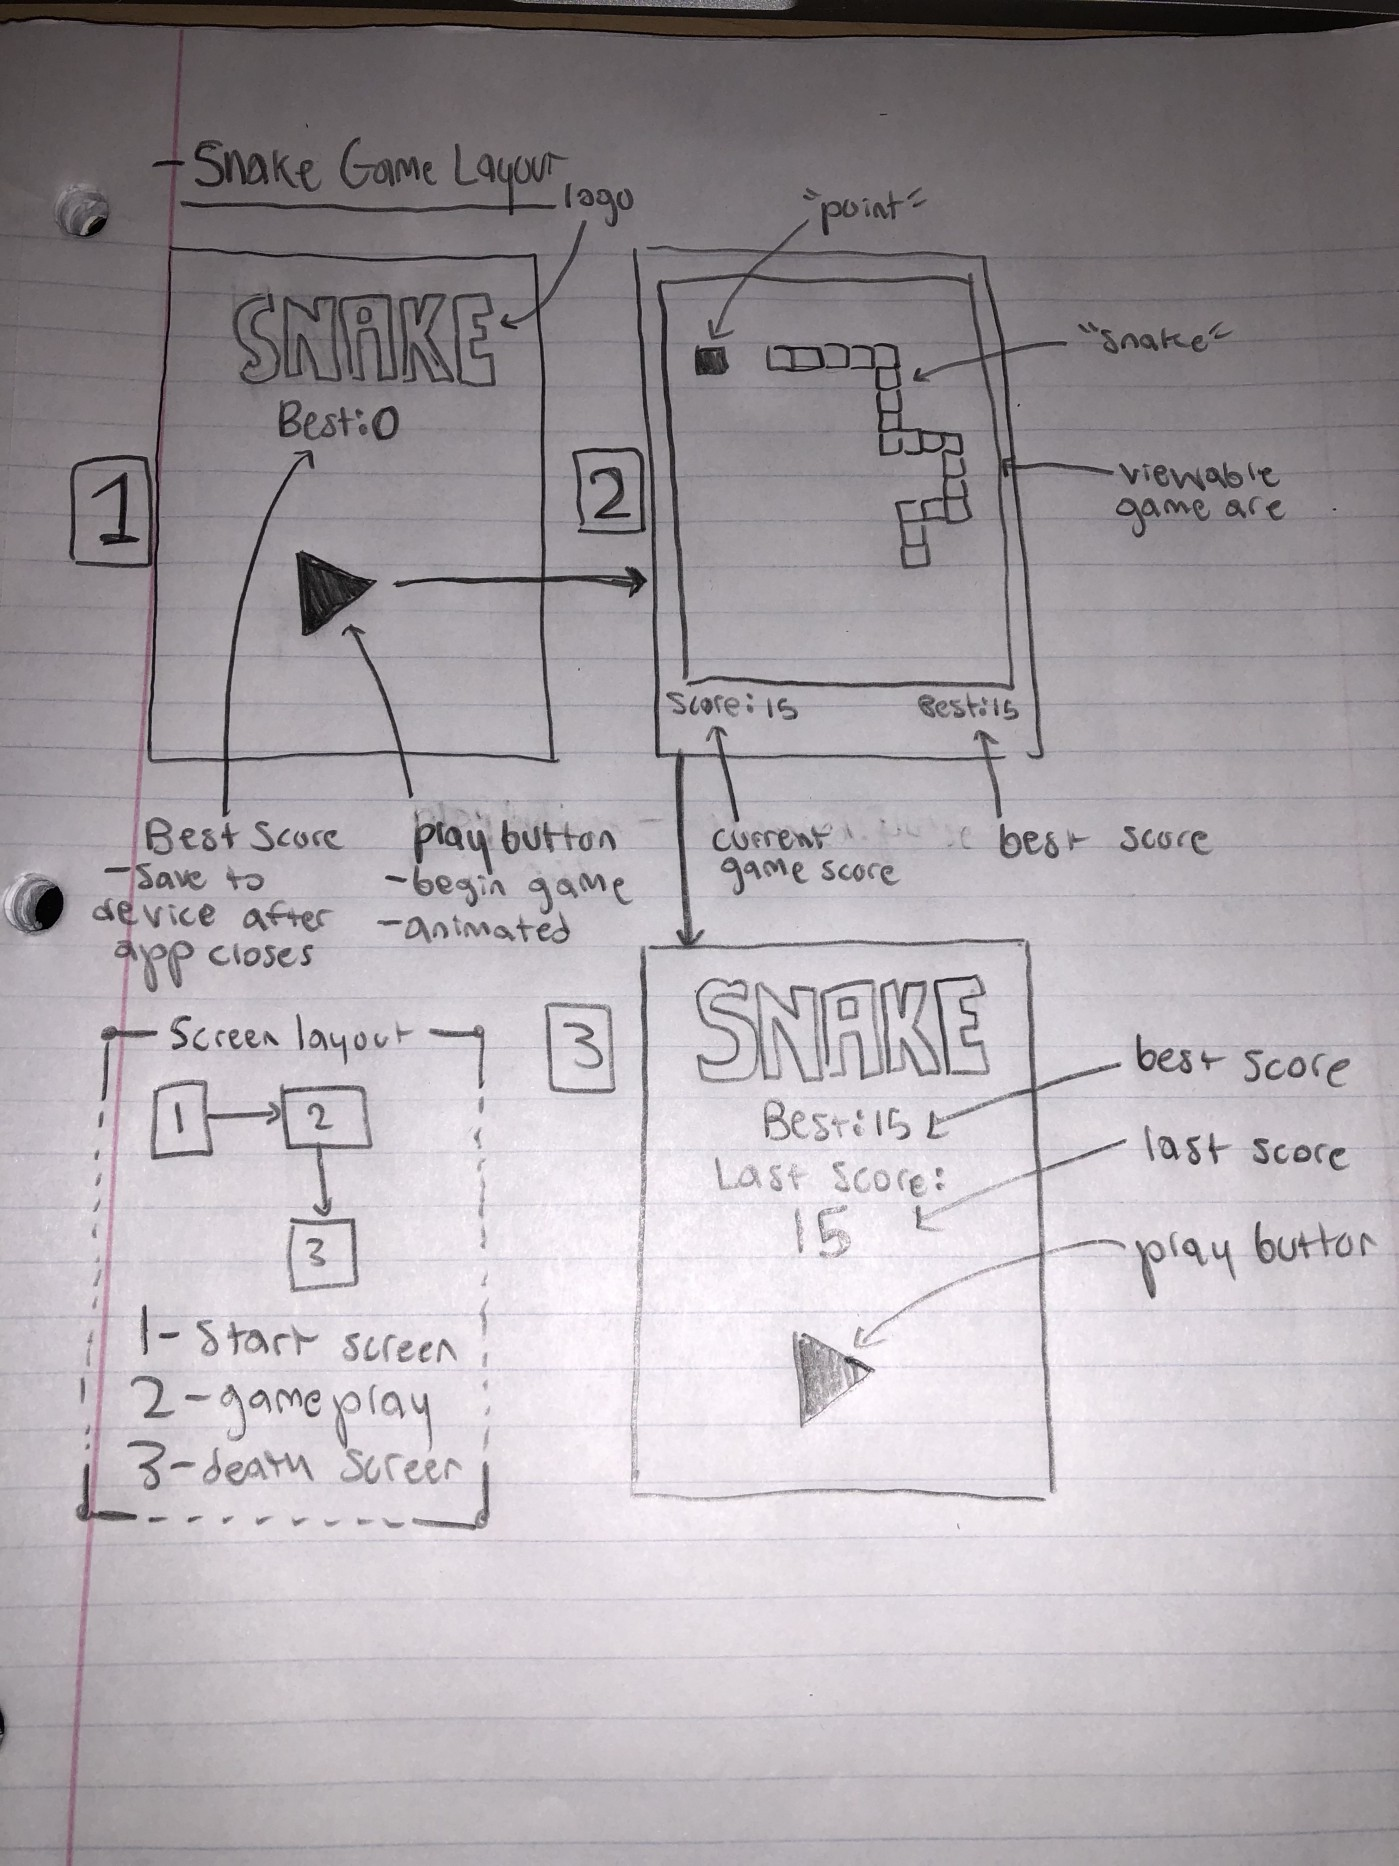 Create your first iPhone game from scratch, no coding experience